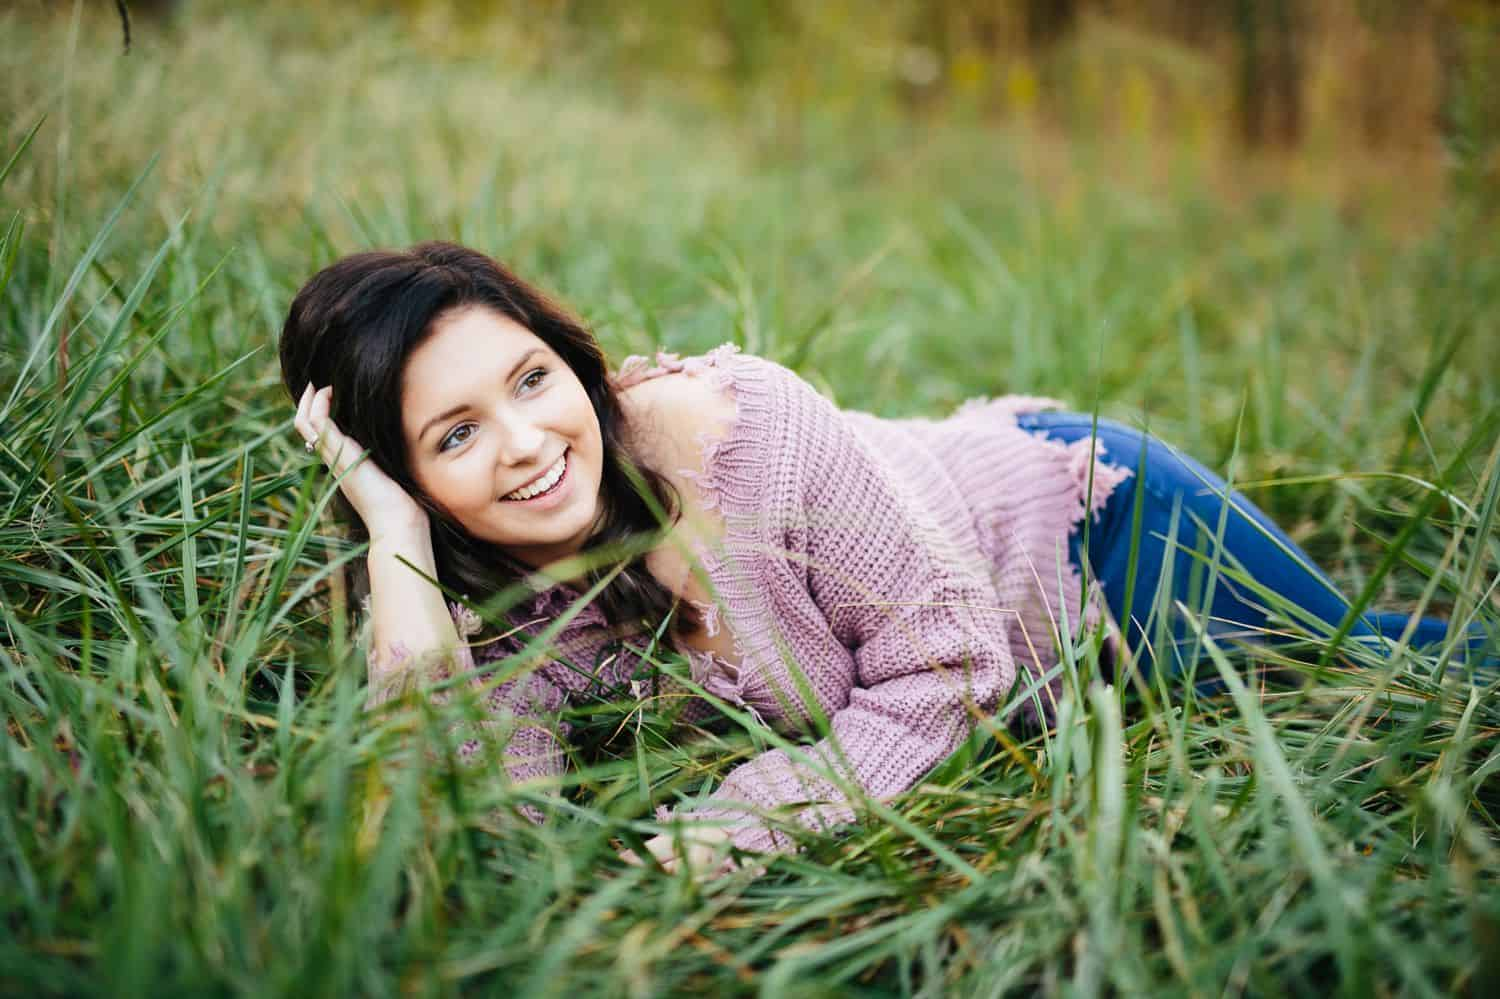 A high school senior wearing a lavender sweater lies on her side in long, green grass